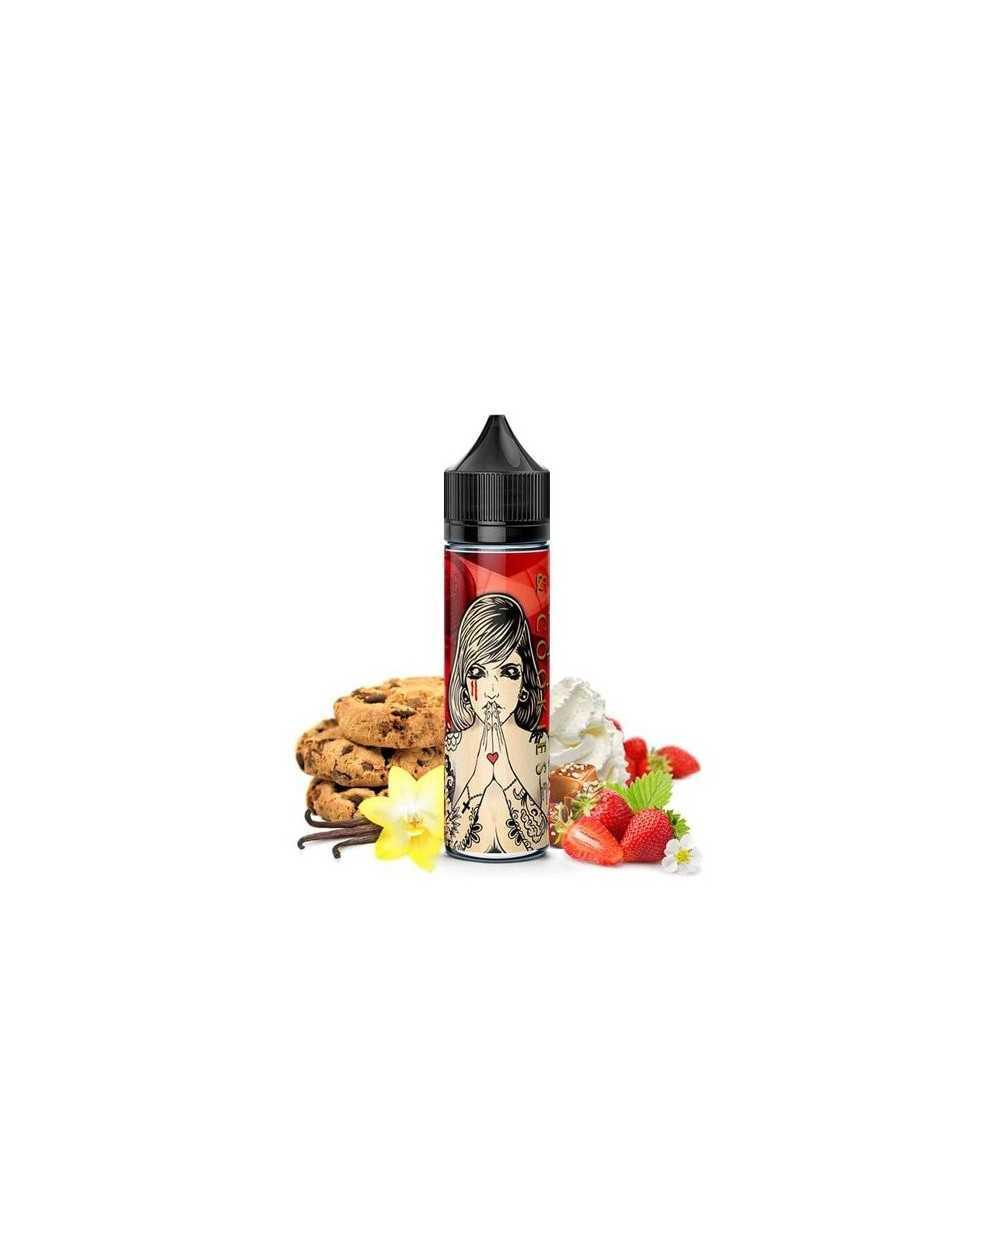 Mother's Milk & Cookies 50ml - Suicide Bunny-1